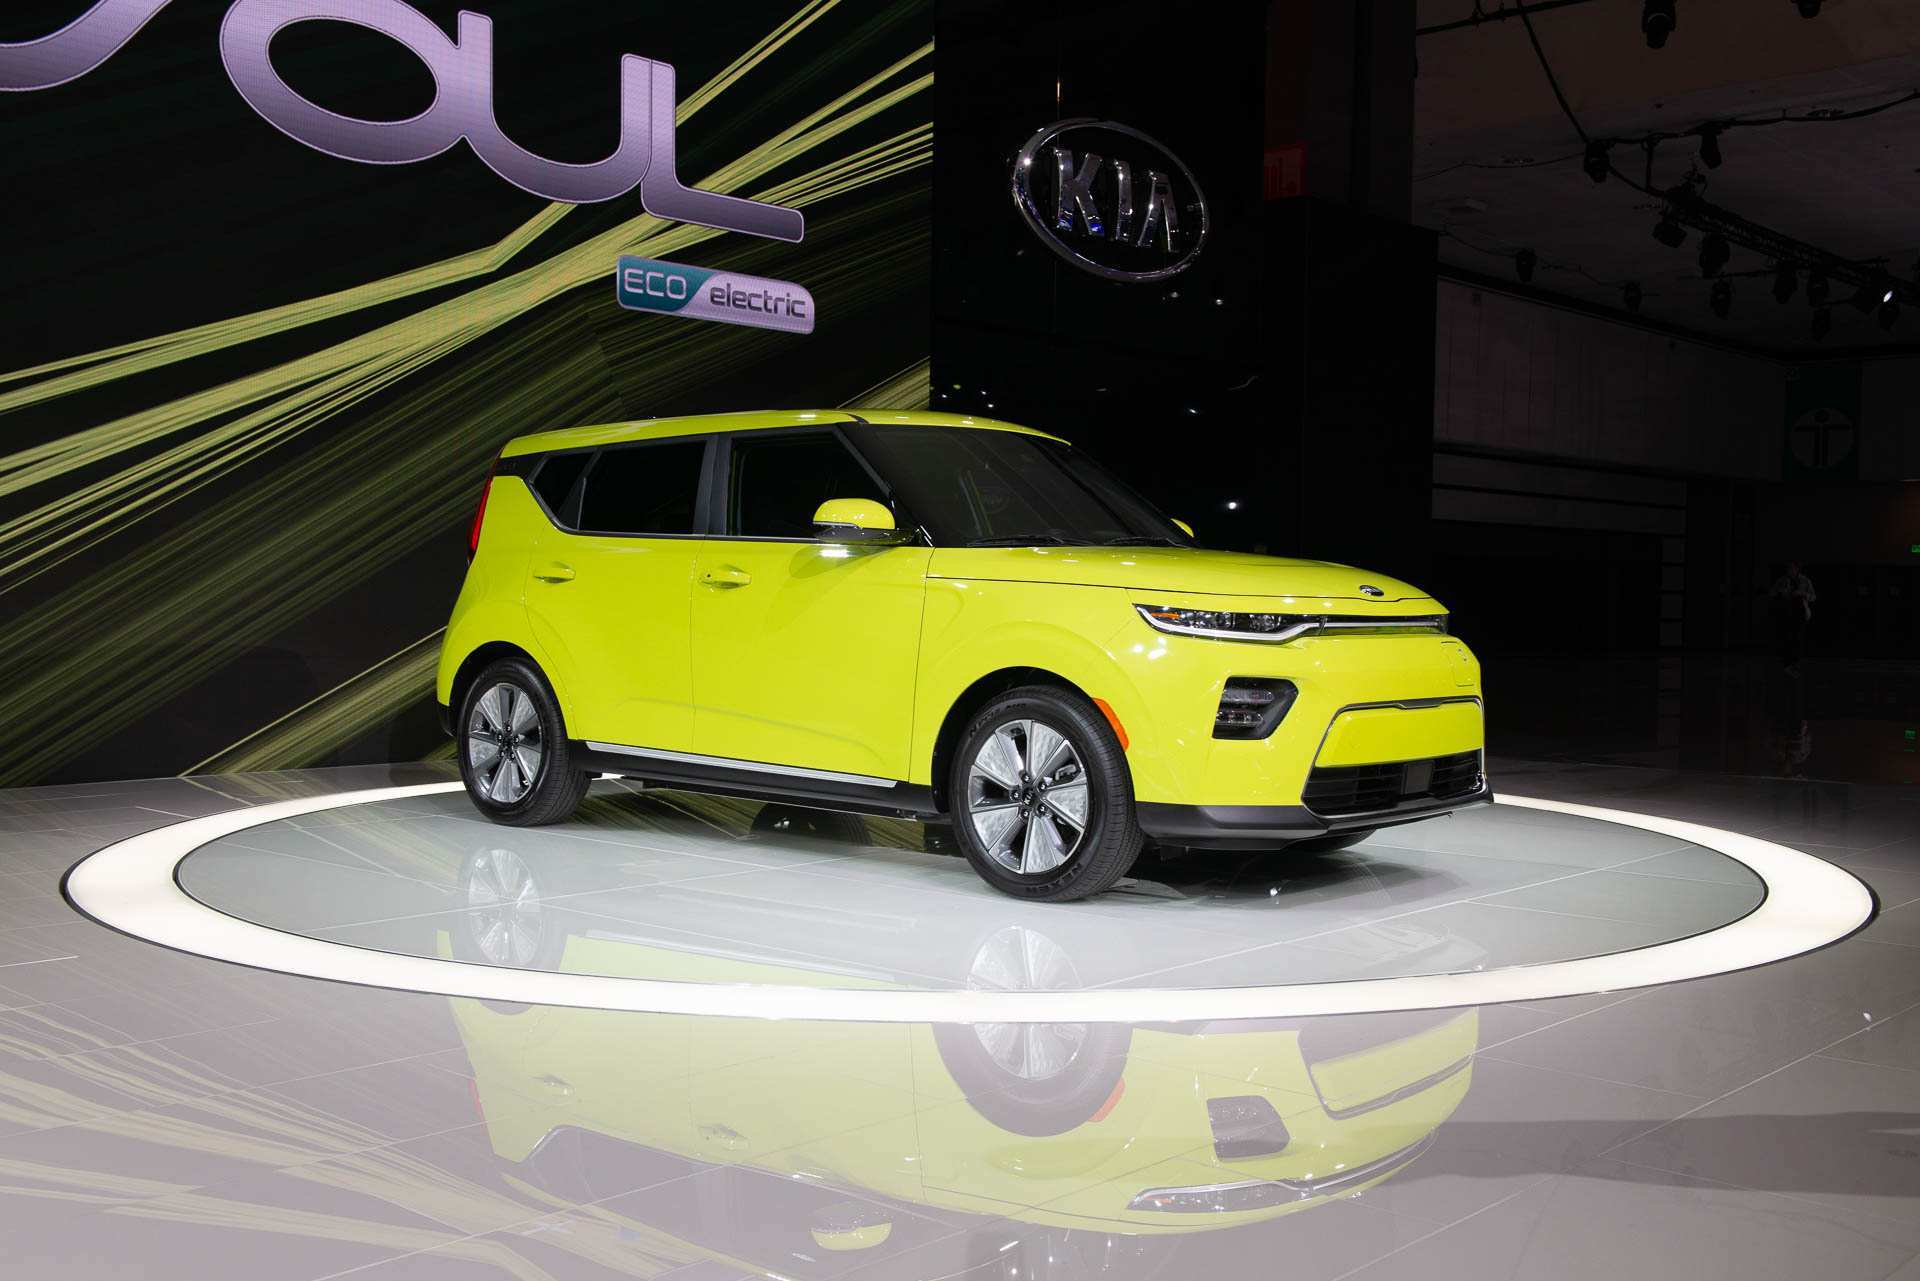 23 Concept of 2020 Kia Soul Ev Price Performance and New Engine by 2020 Kia Soul Ev Price